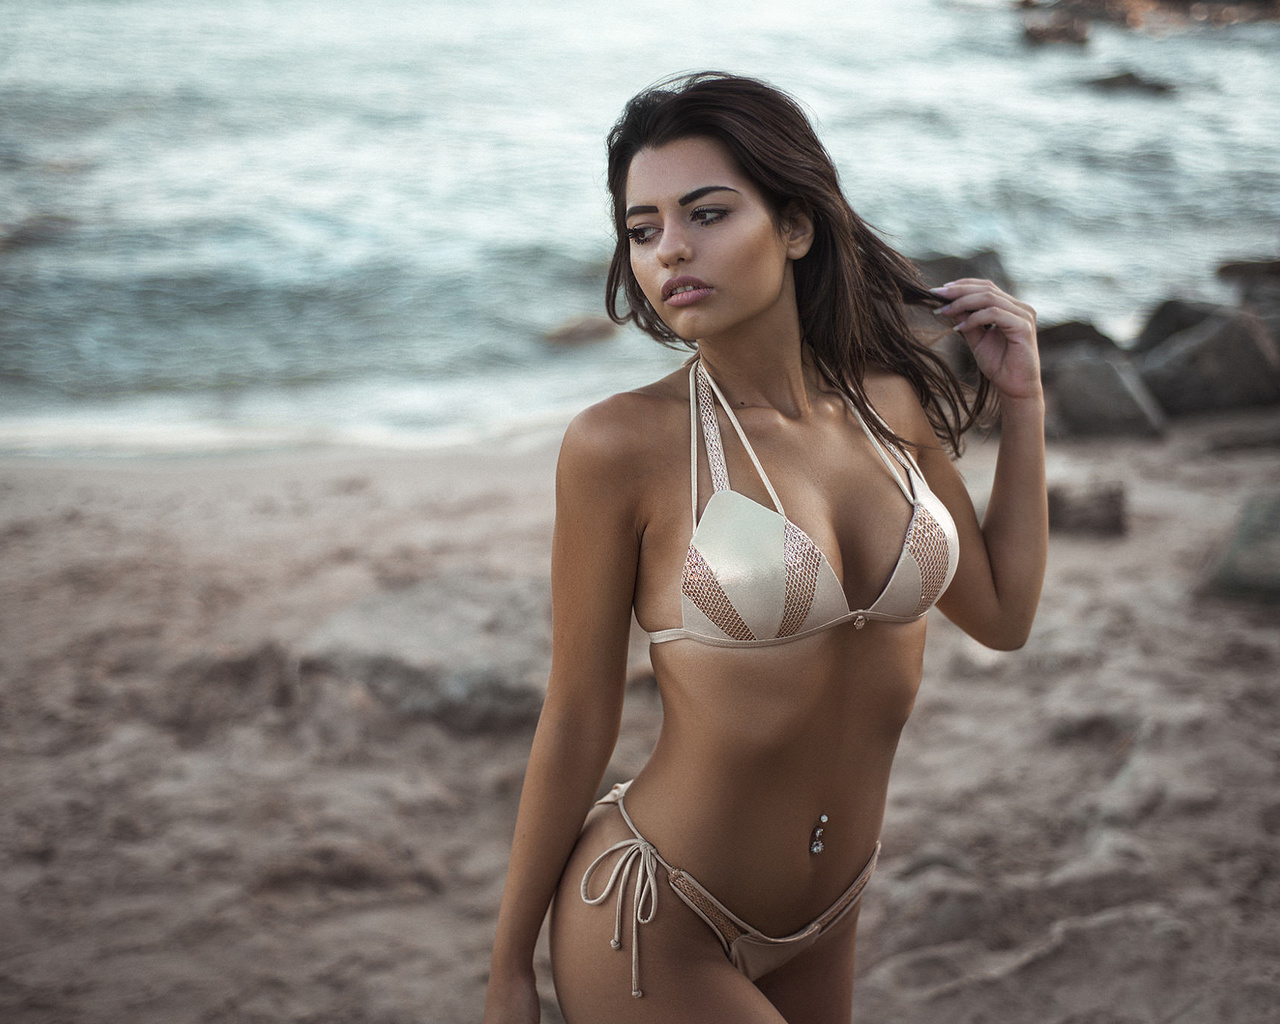 women, brunette, sea, belly, bikini, sand, pierced navel, looking away, women outdoors, ribs, marianna bafiti, dimitris konstantinidis